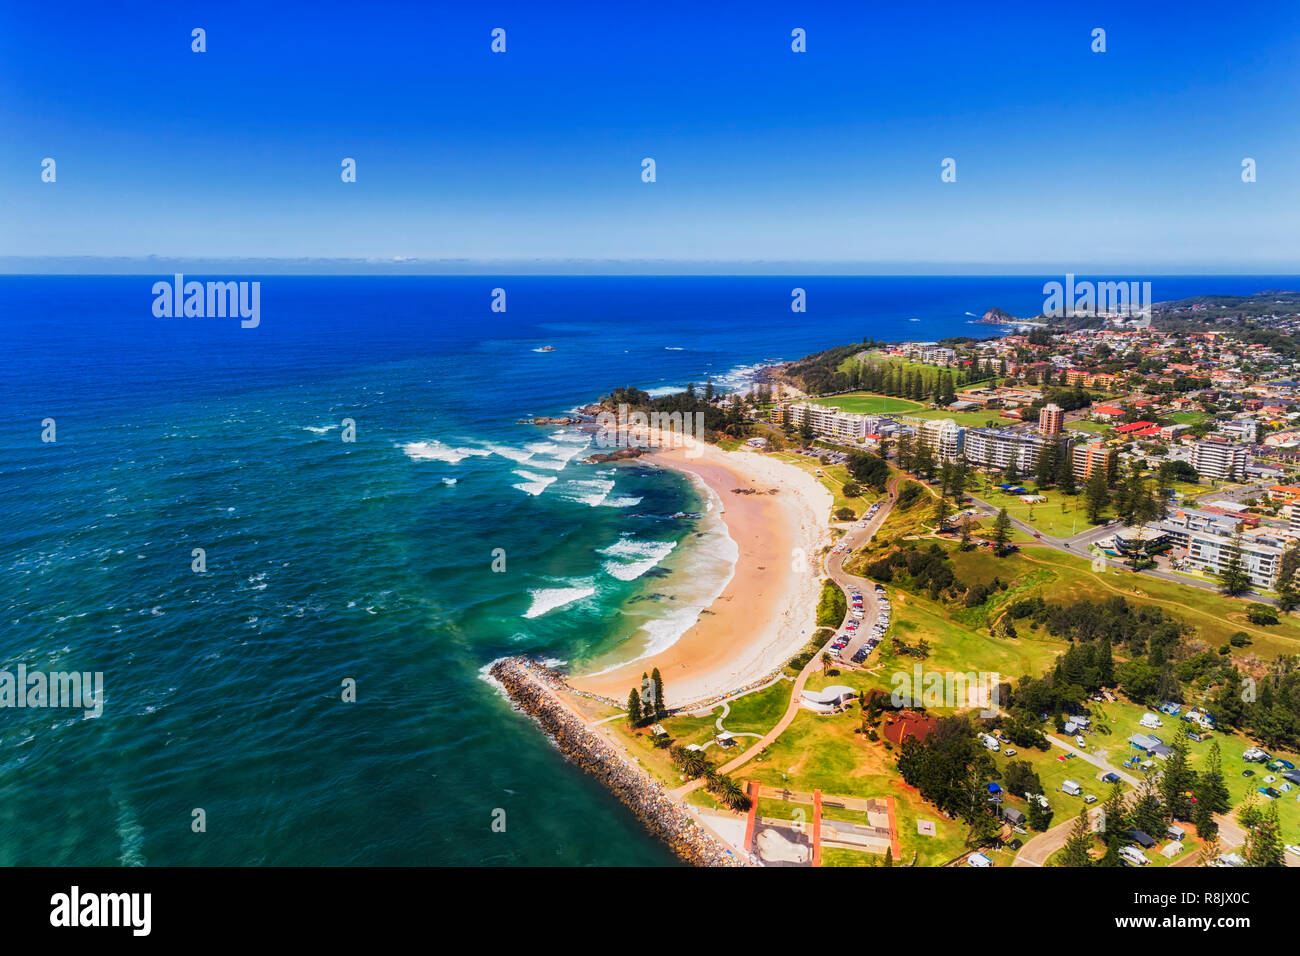 Port Macquarie on Australian NSW pacific coast seen from above around river delta and local beach adjusted to caravan park for tourists. Stock Photo